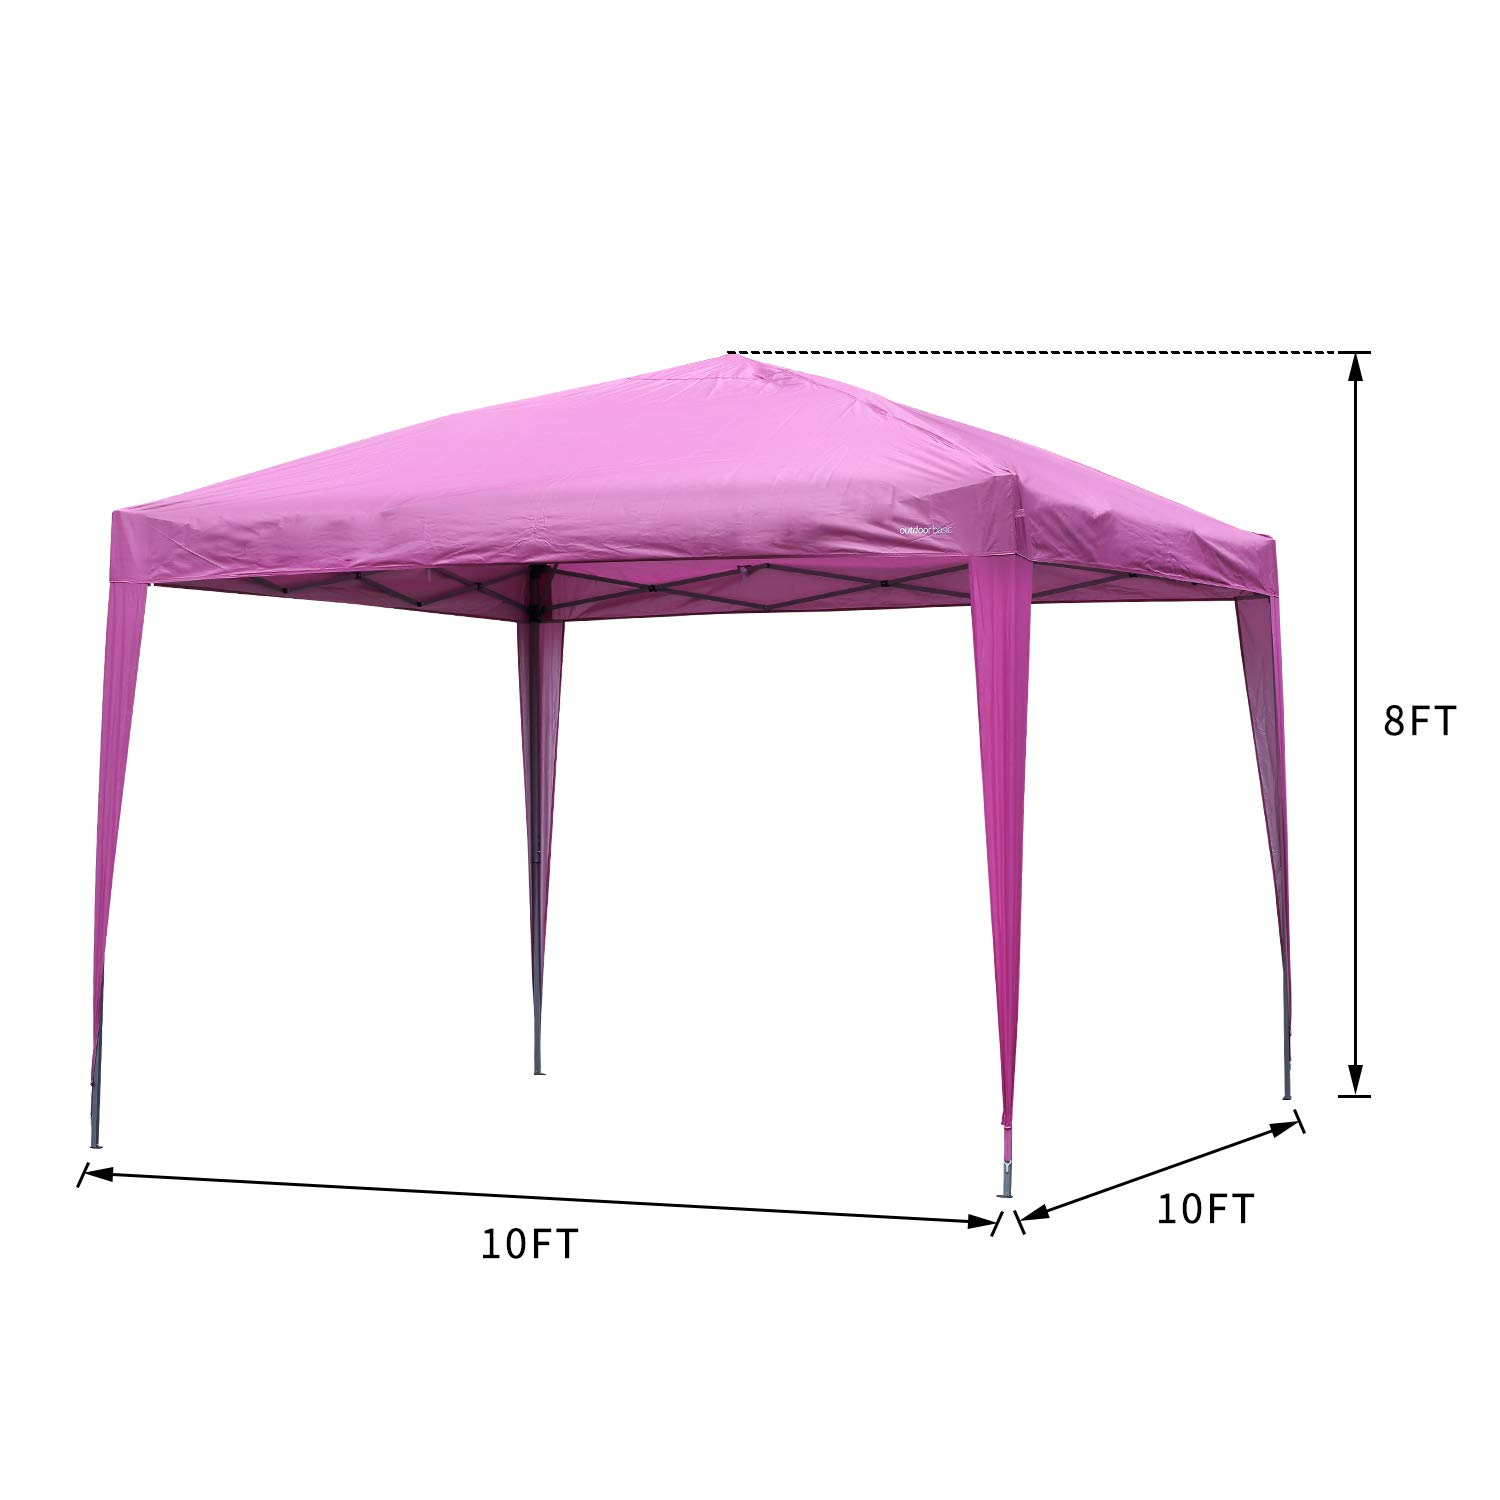 Outdoor Basic 10×10 Pop up Canopy Party Tent Instant Gazebos with 4 Removable Sidewalls Pink